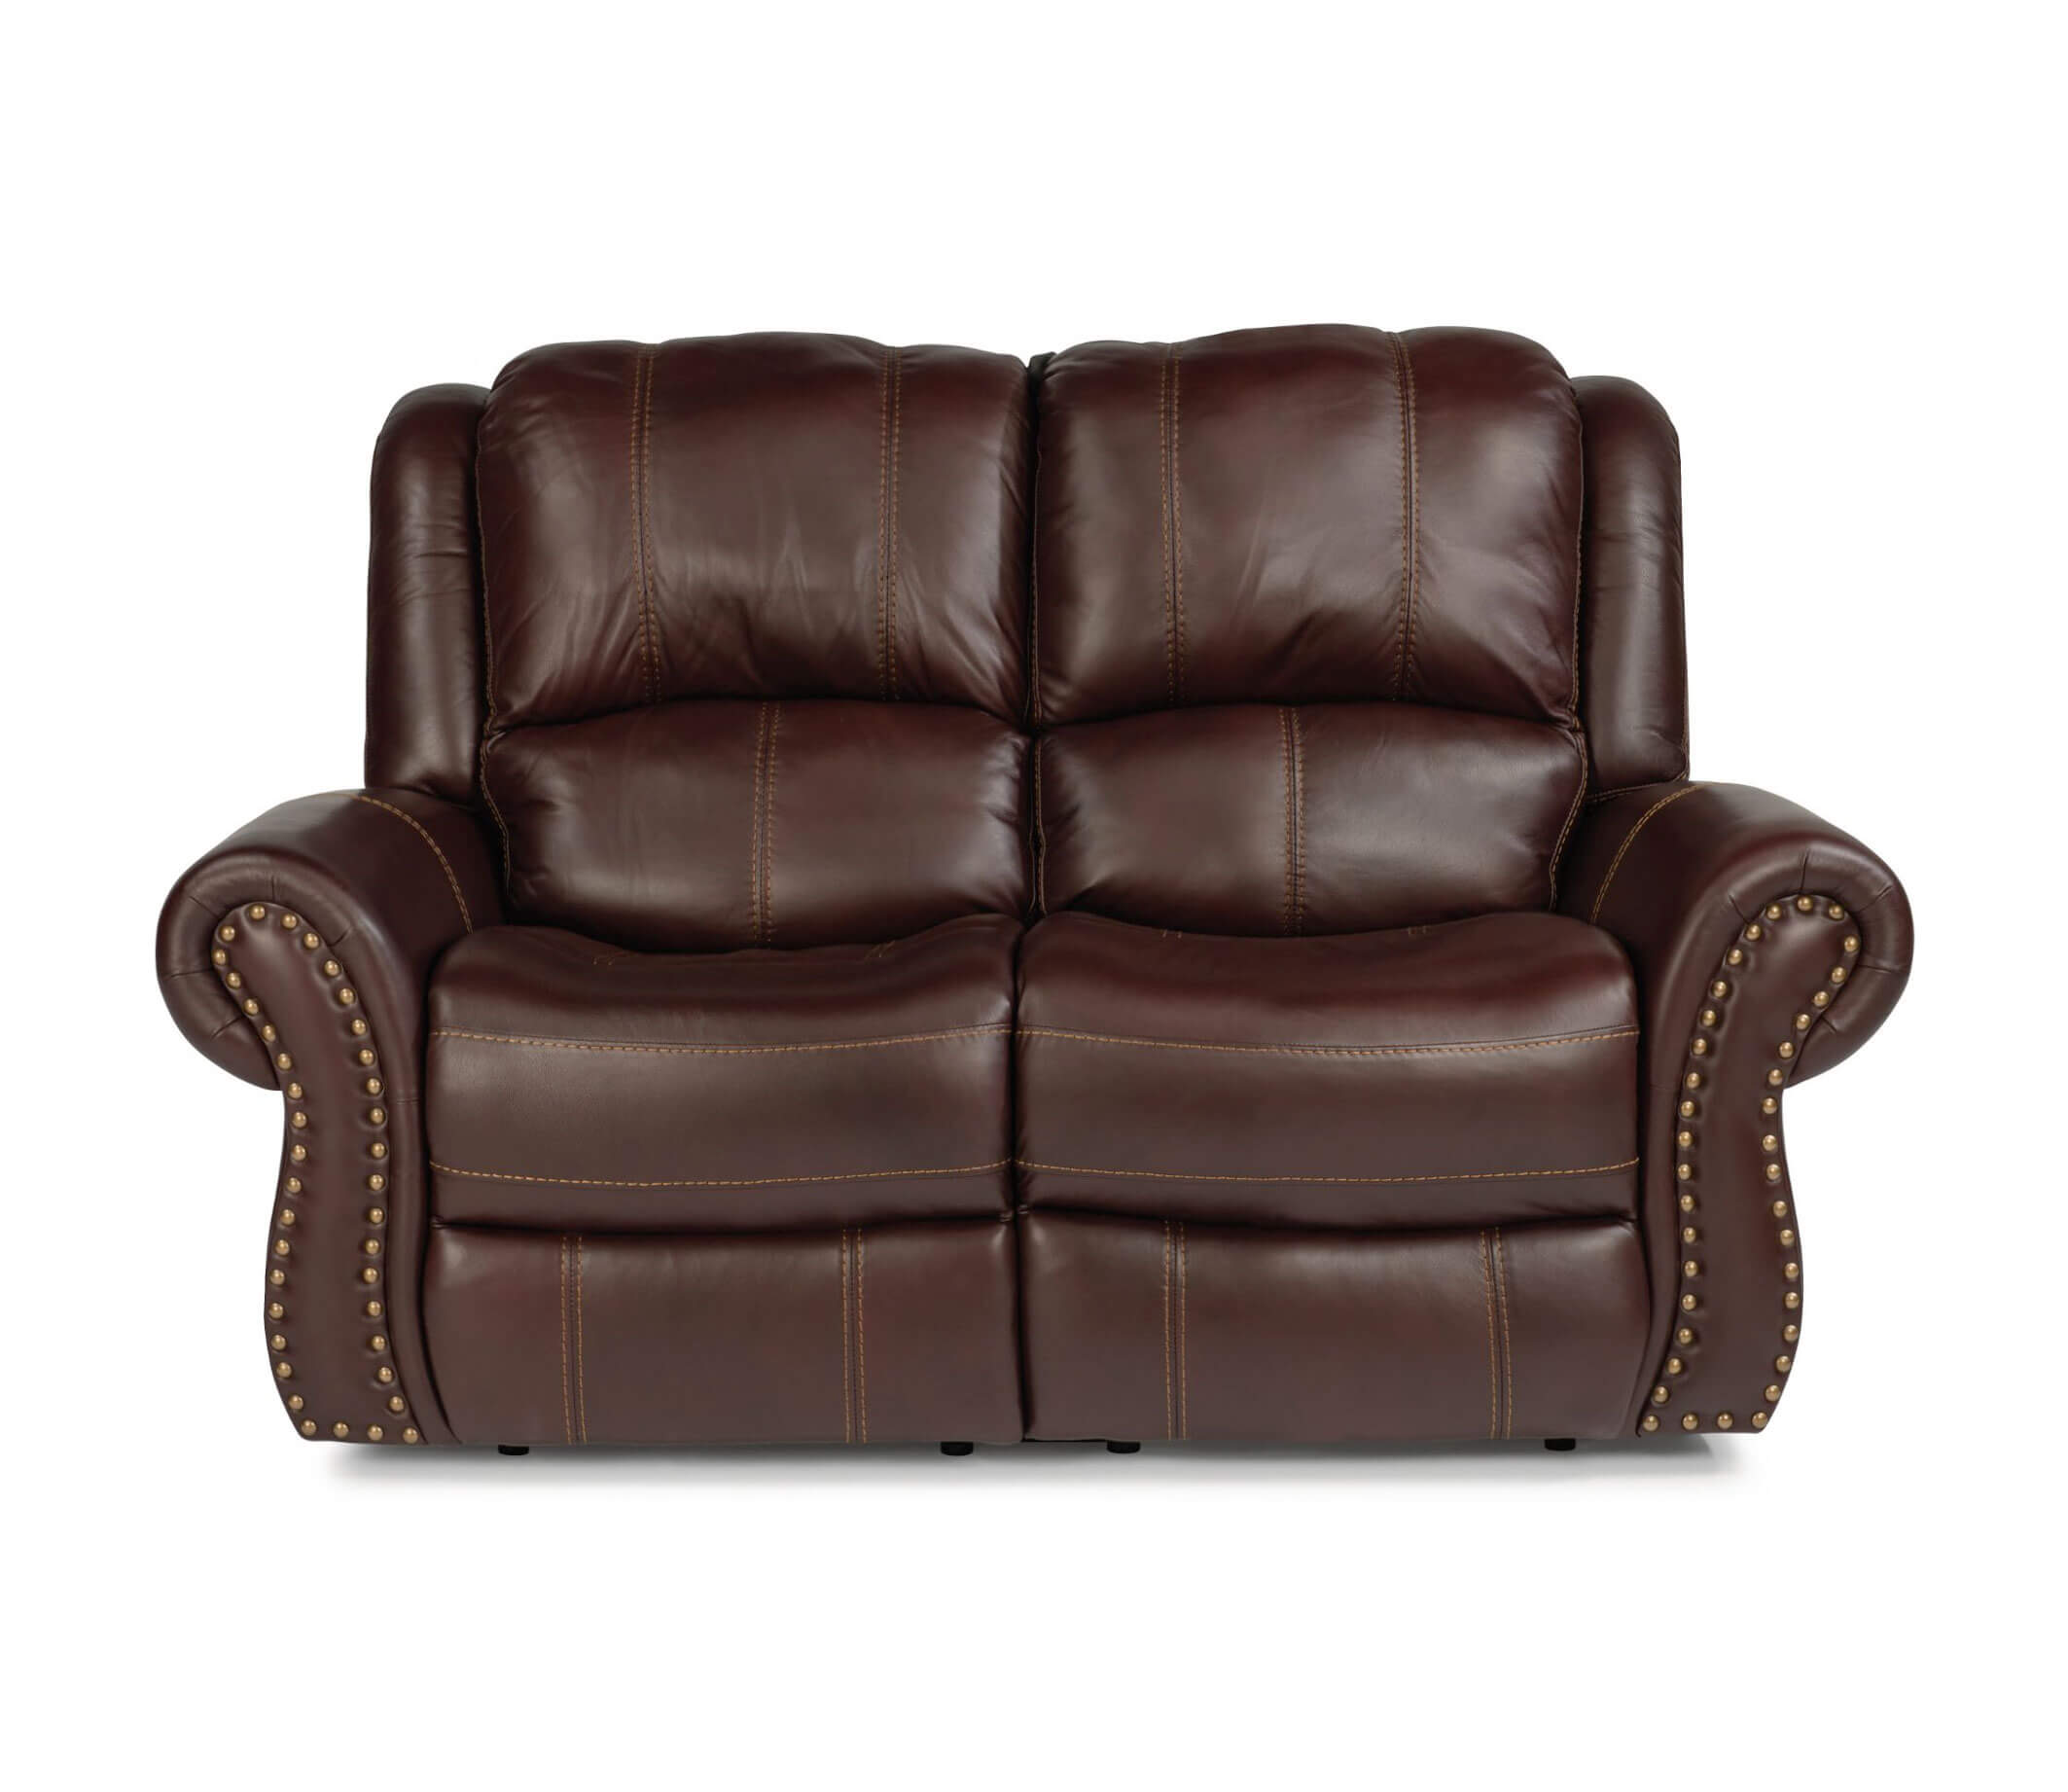 Patton Leather Sofa & Loveseat | Bedrooms & More, Seattle